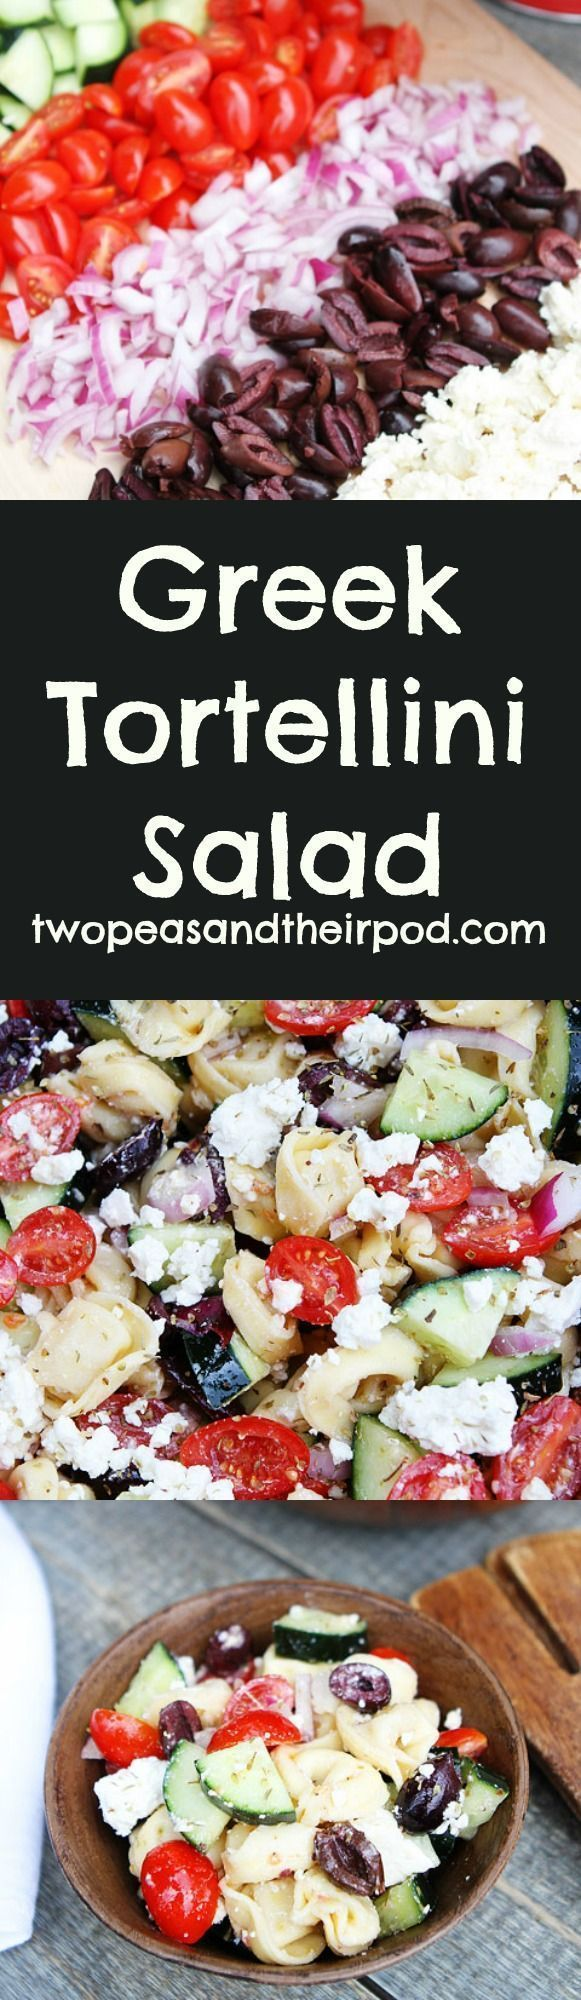 Greek Tortellini Salad Recipe This fresh and easy salad is made with cheese tortellini, tomatoes, cucumber, olives, red onion, feta cheese, and a simple Greek salad dressing. More easy, delicious  and healthy recipes @twopeasandpod #healthyrecipes #healthy